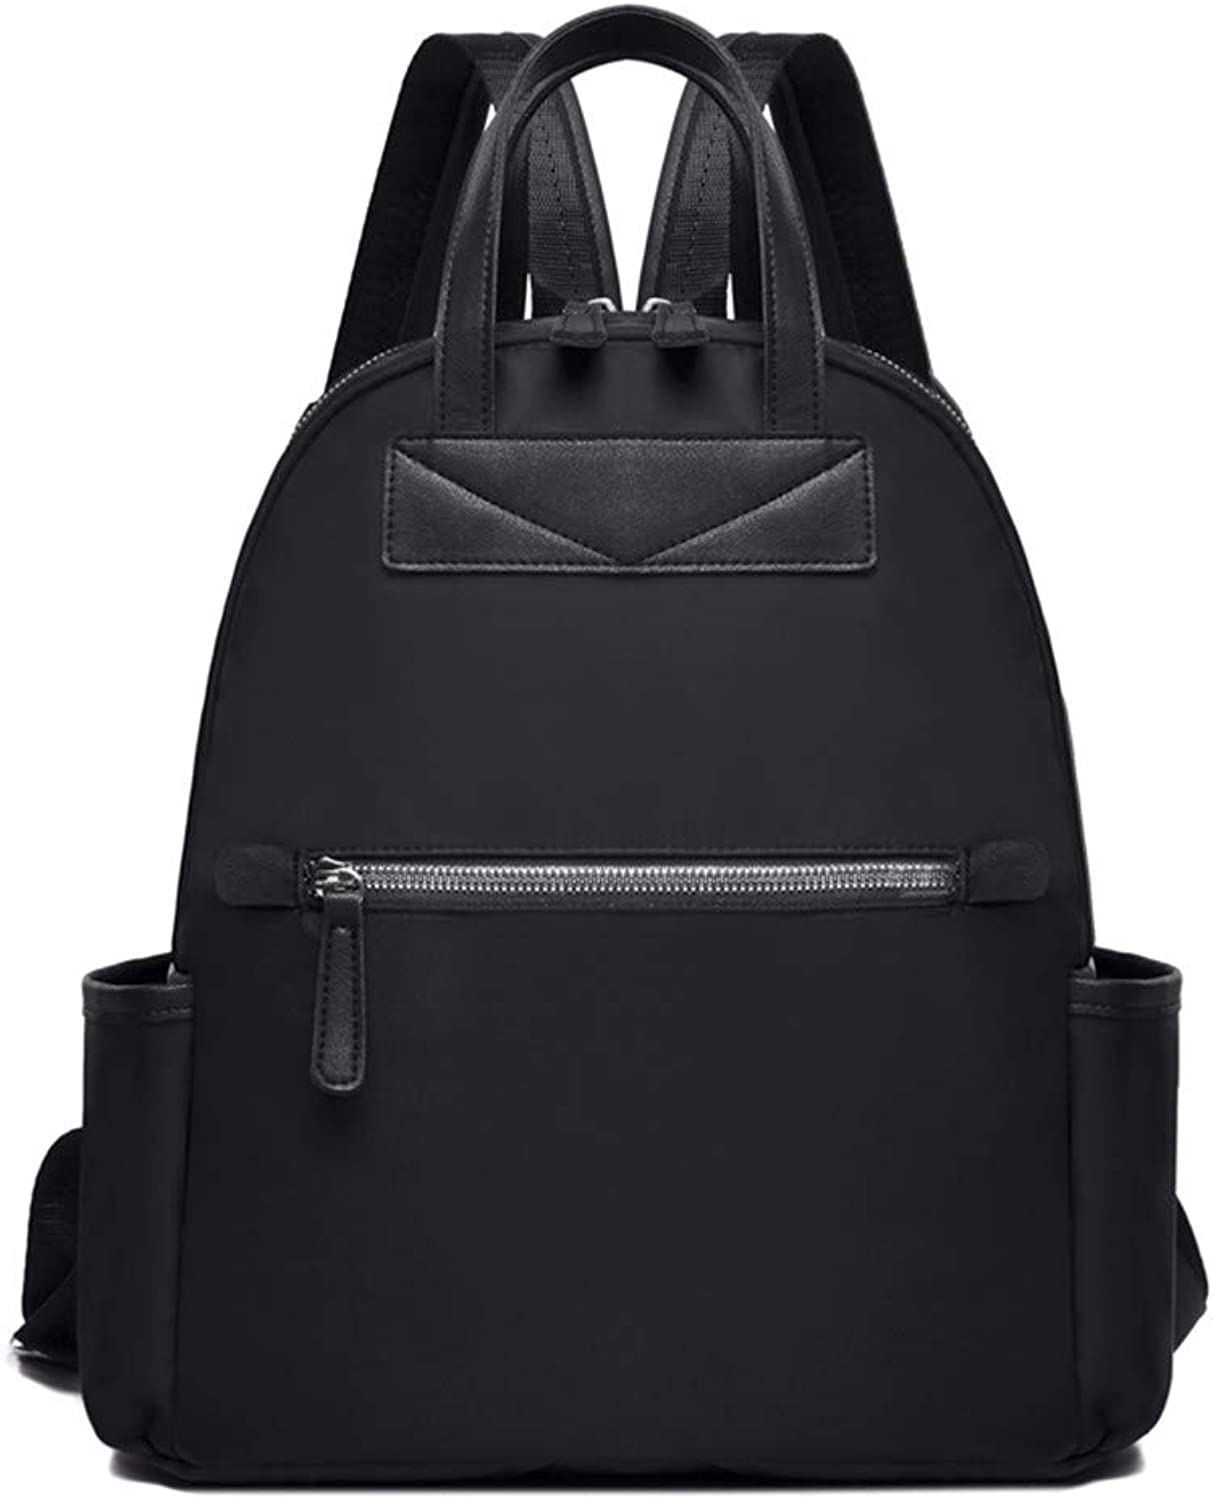 Backpack Nylon Oxford Backpack Portable Canvas Bag, Black Casual Practical Simple